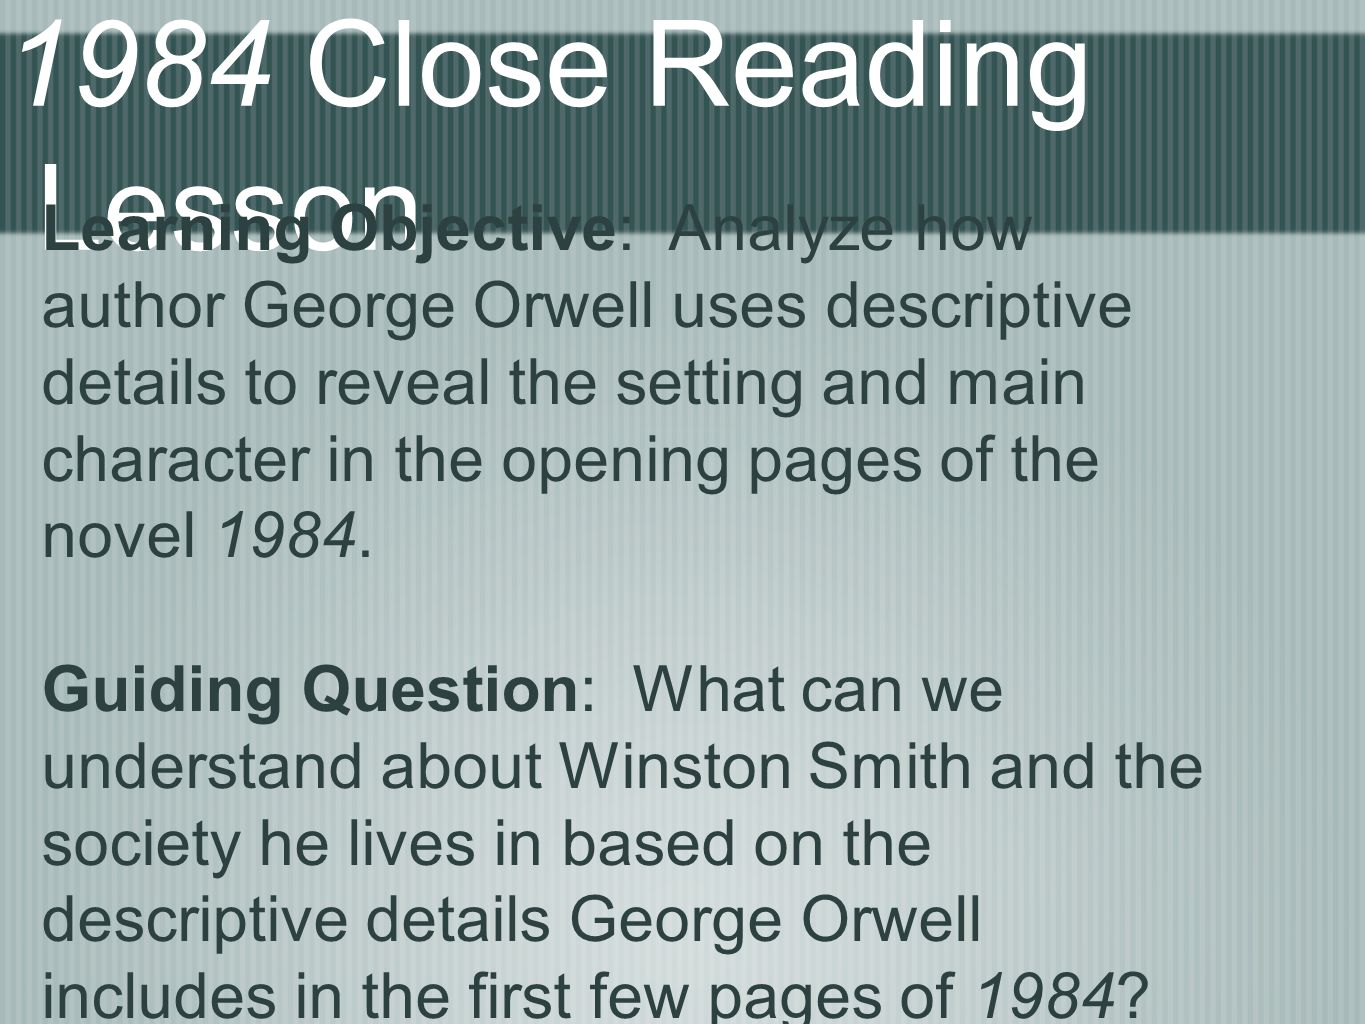 1984 Close Reading Lesson Learning Objective: Analyze how author George Orwell uses descriptive details to reveal the setting and main character in th